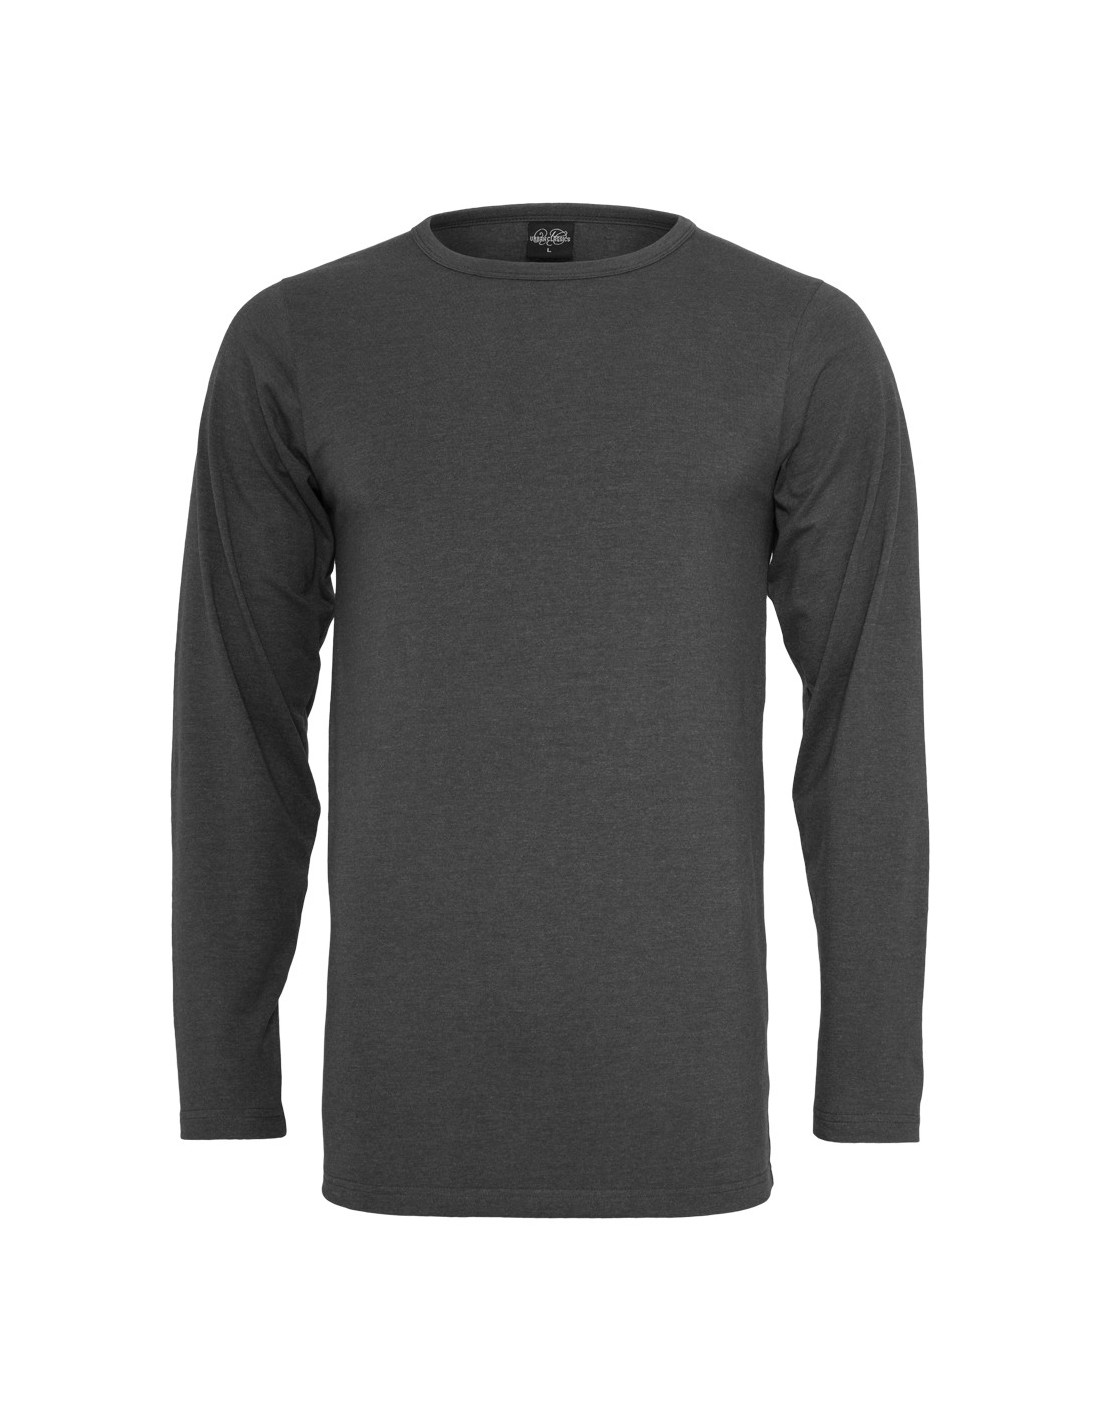 Fitted Stretch L/S Tee Charcoal